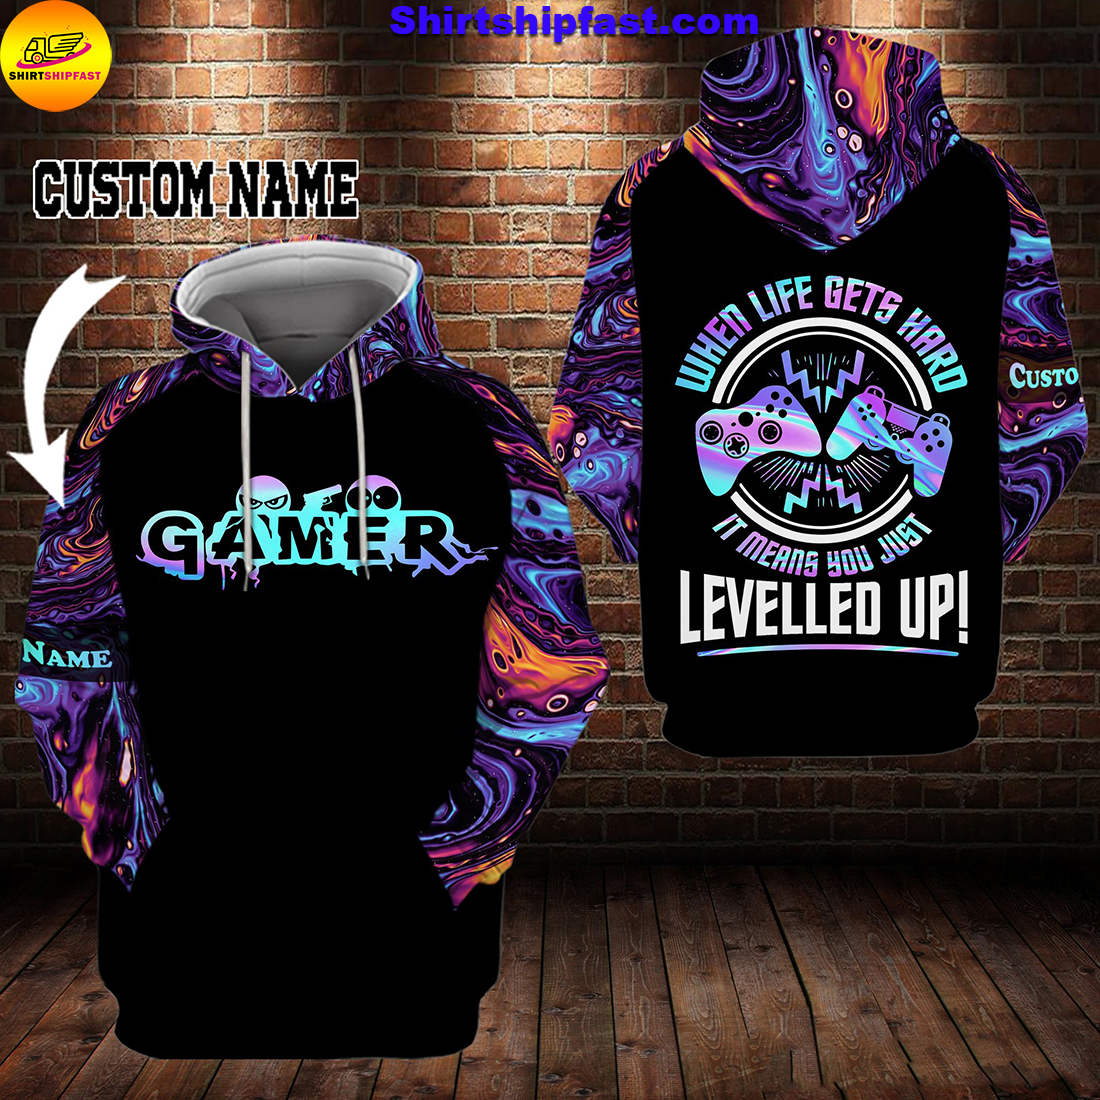 Gamer When life gets hard it means you just levelled up personalized custom name 3d hoodie and zip hoodie